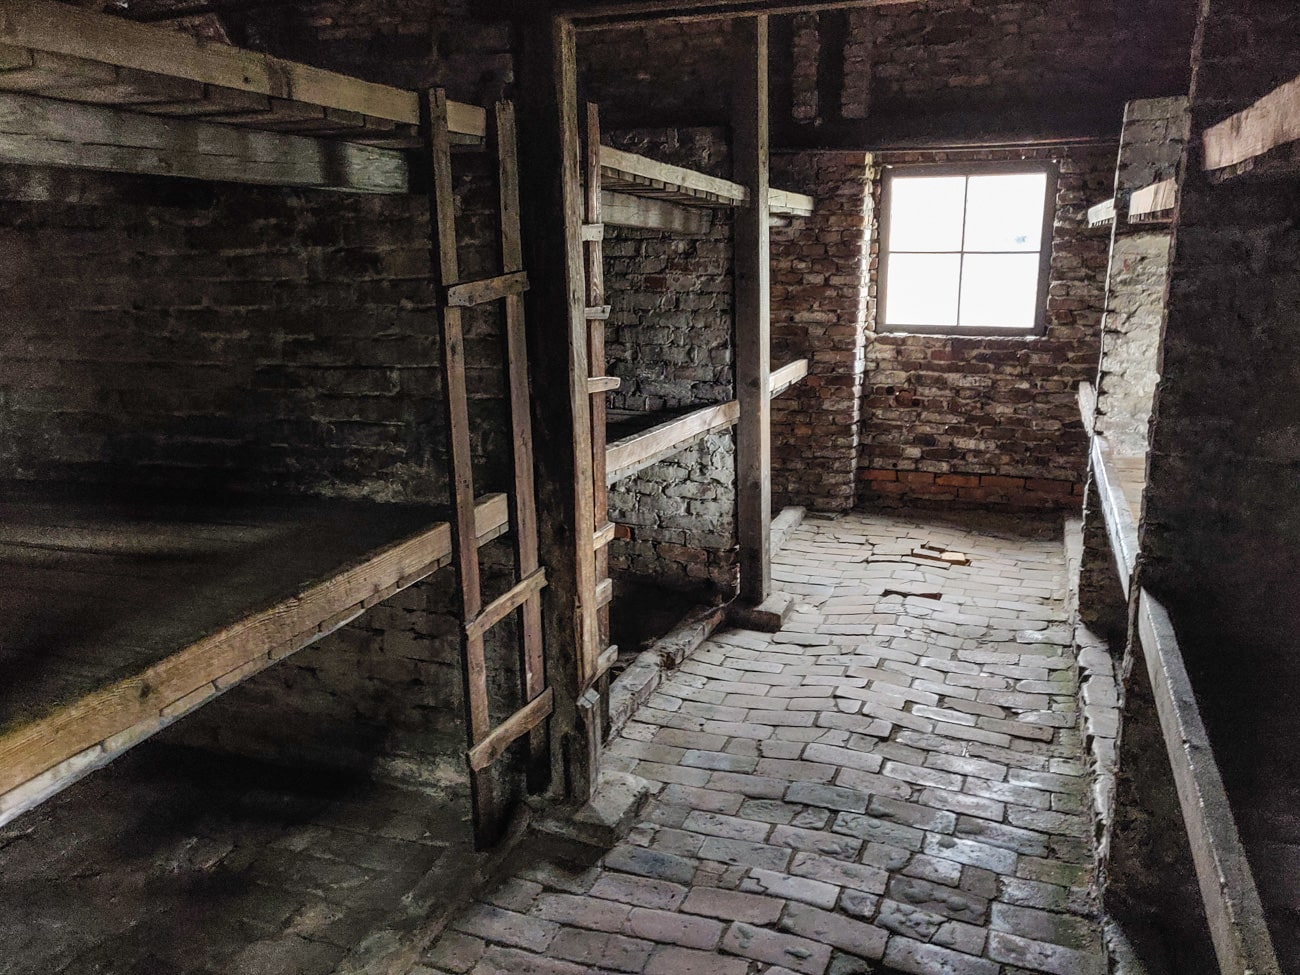 Wooden Bunks for Prisoners in Birkenau Concentration Camp